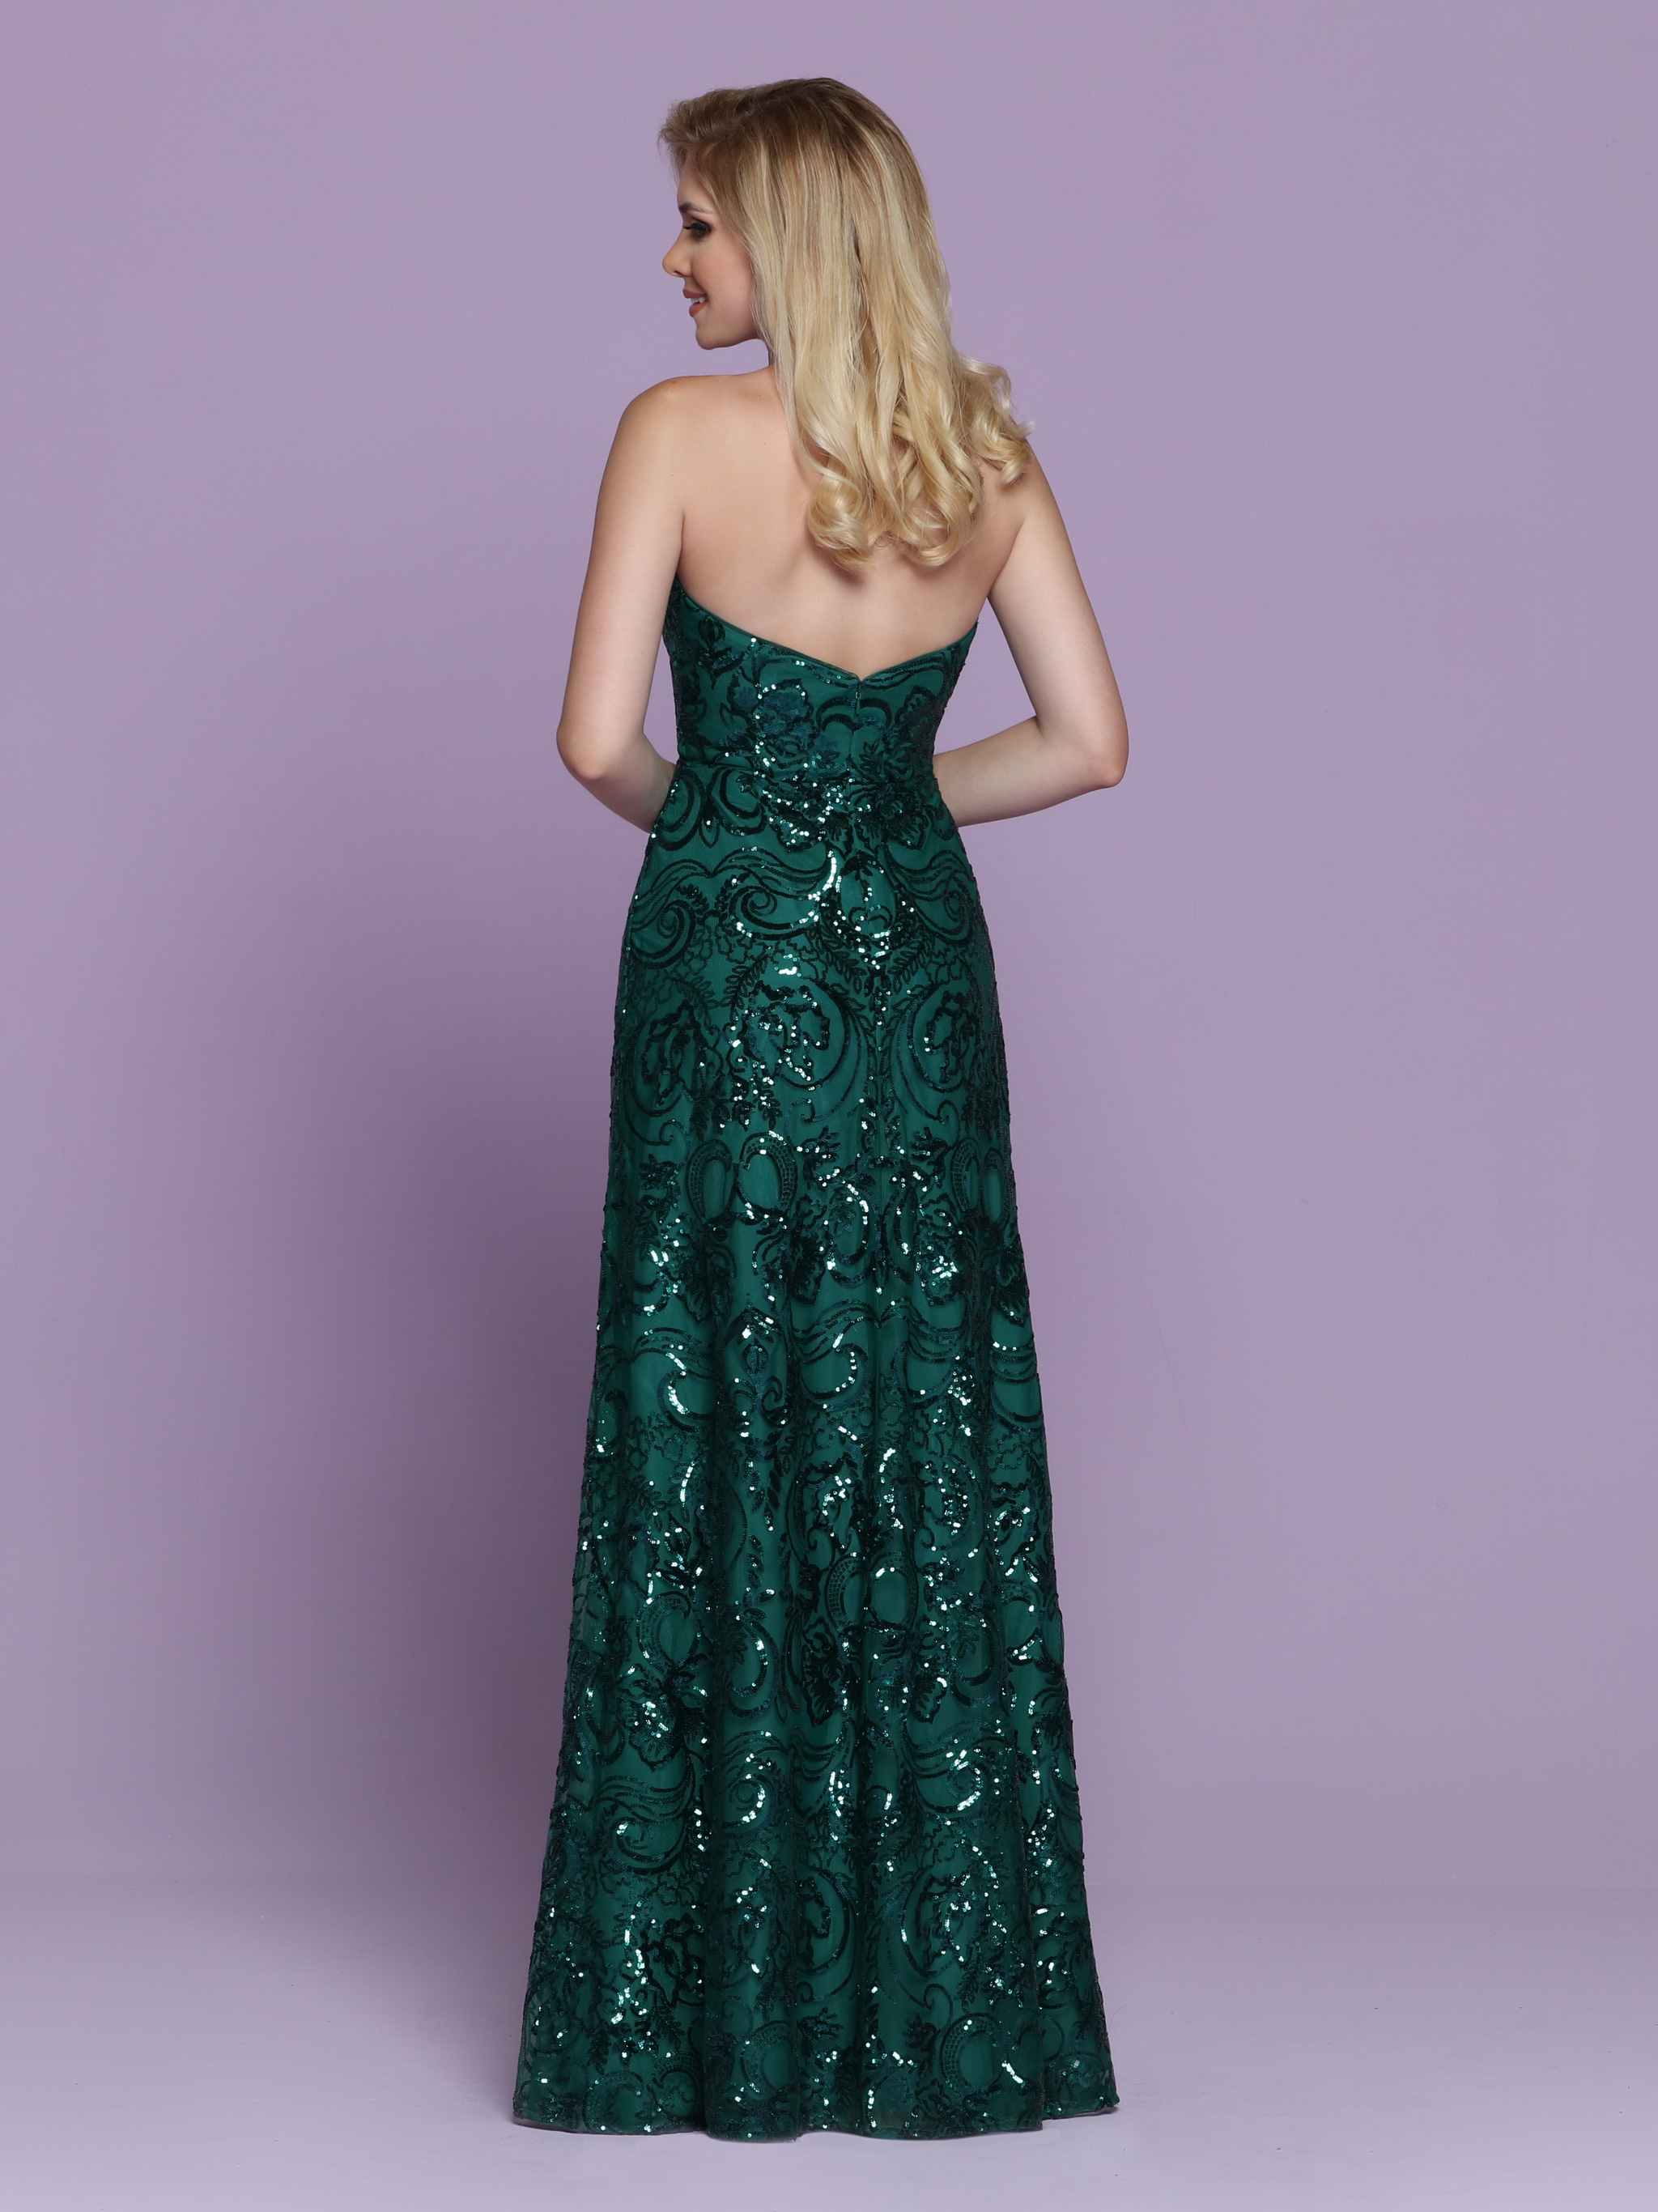 Image showing back view of style #72054